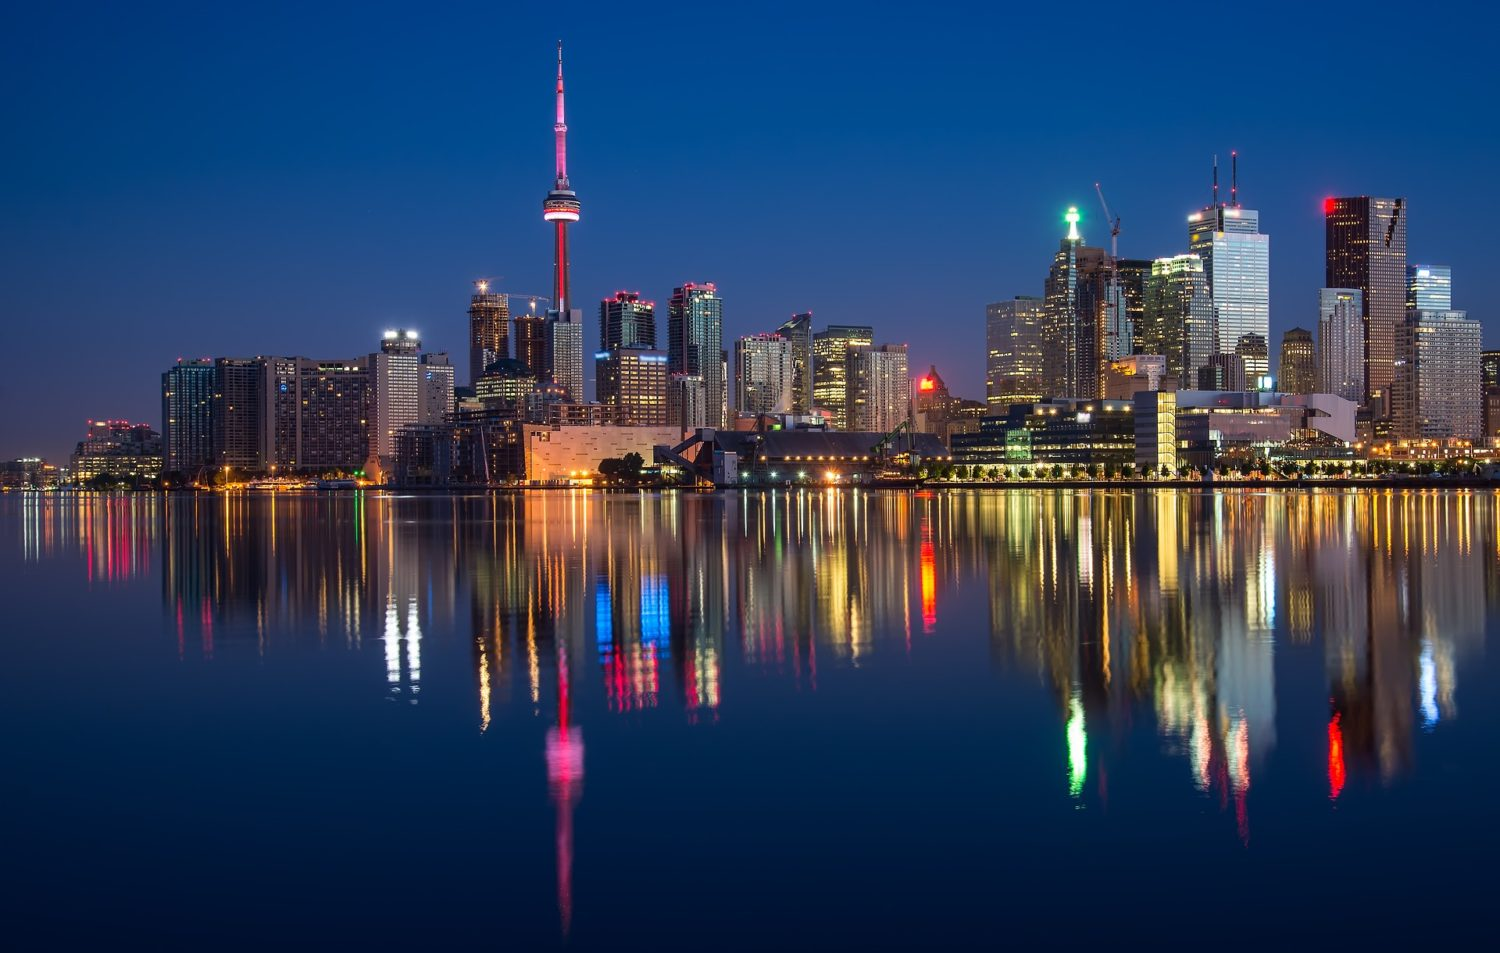 Toronto, Canada with the CN Tower